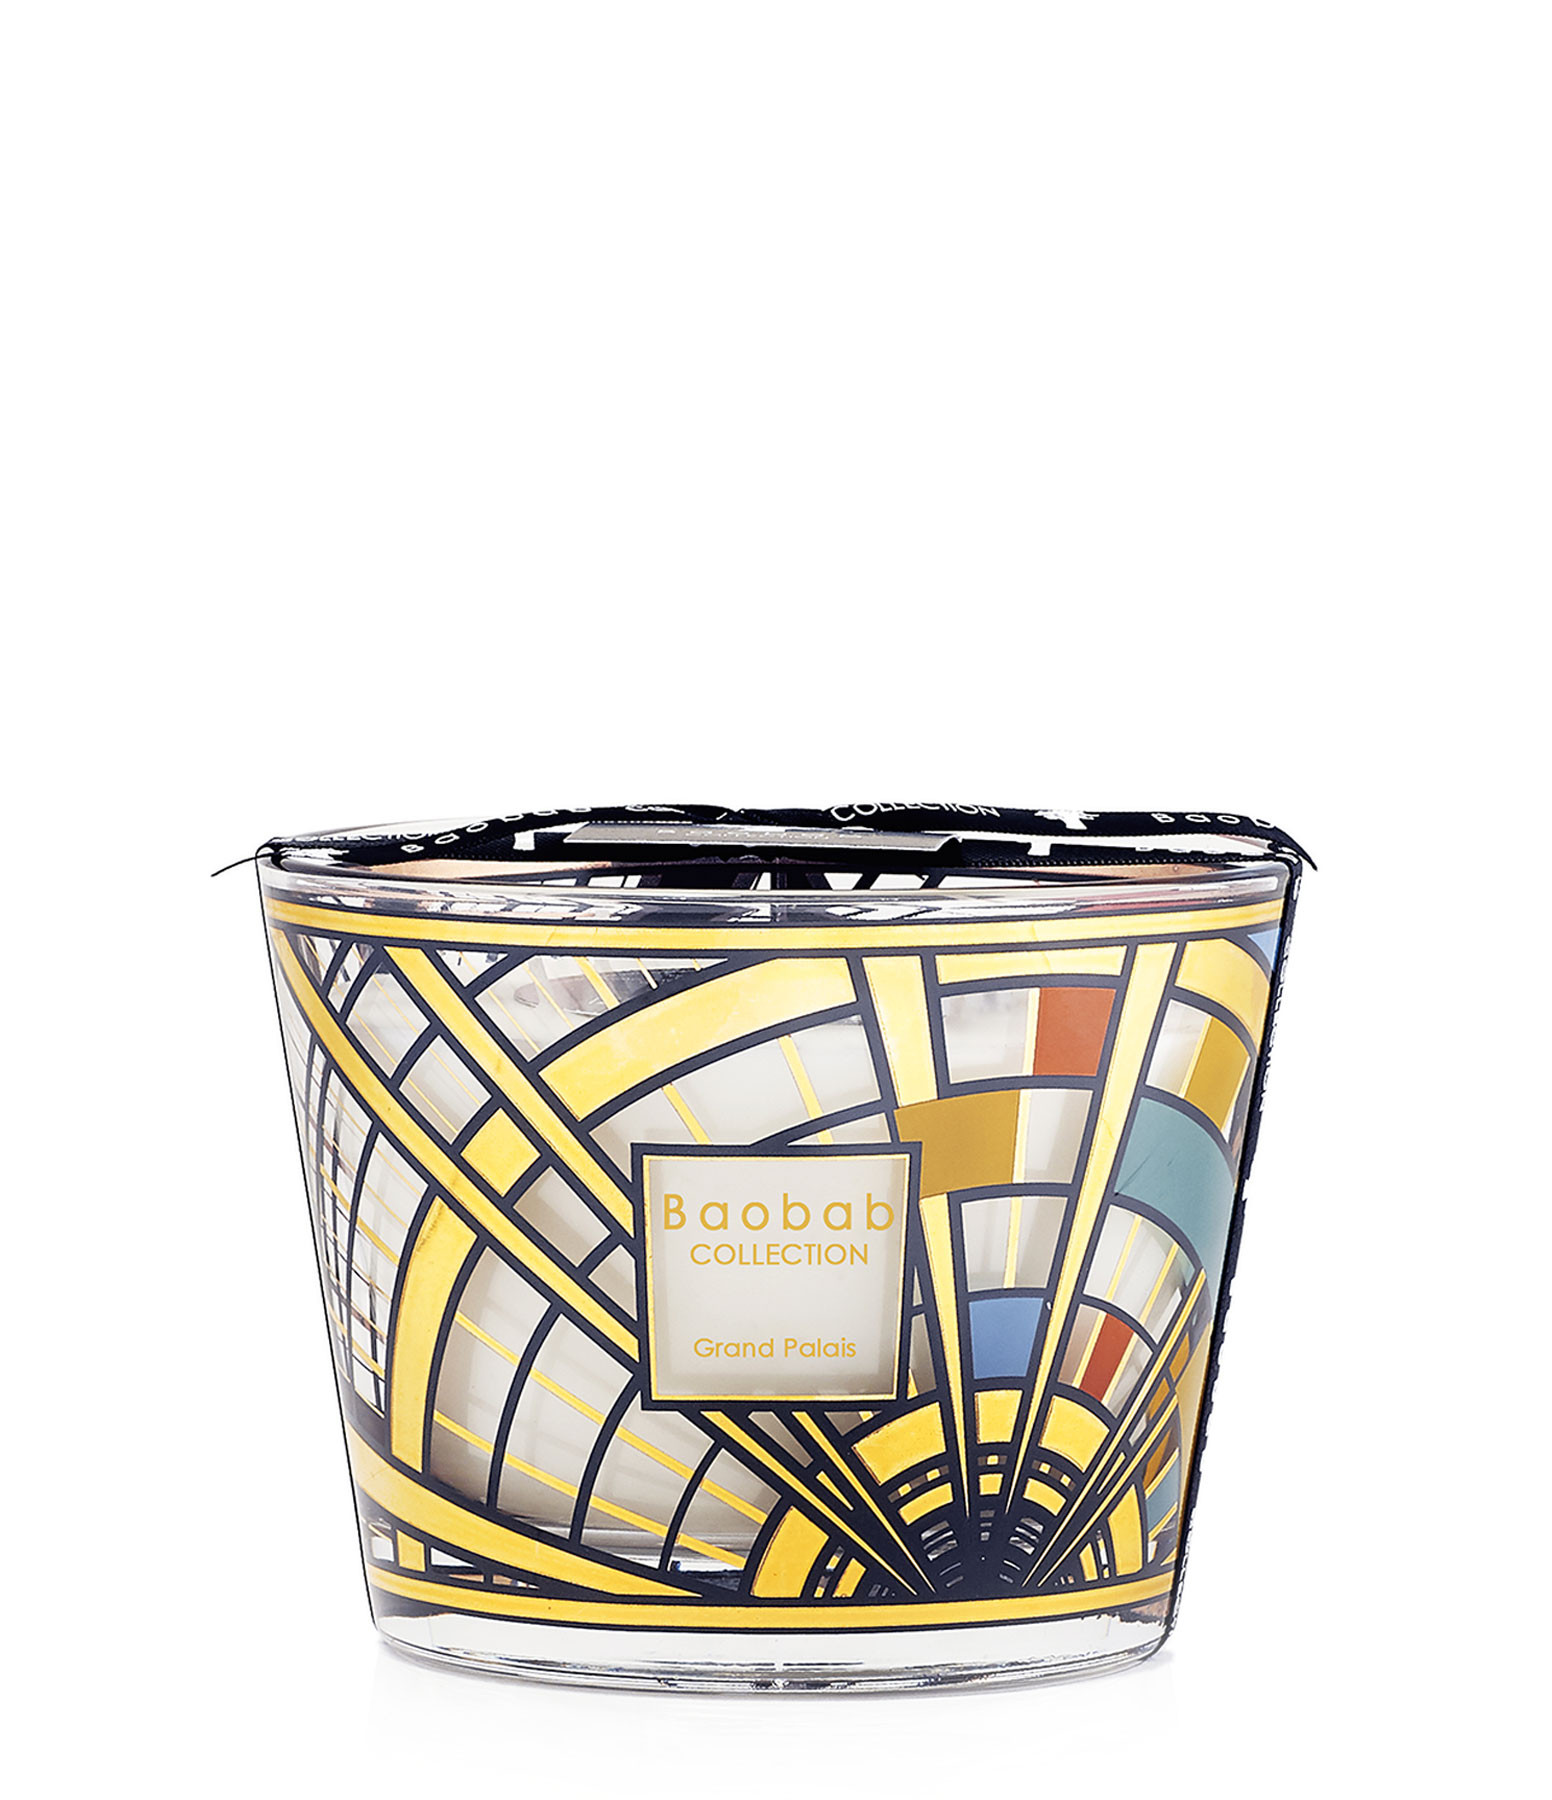 BAOBAB COLLECTION - Bougie Max 10 Cities Grand Palais